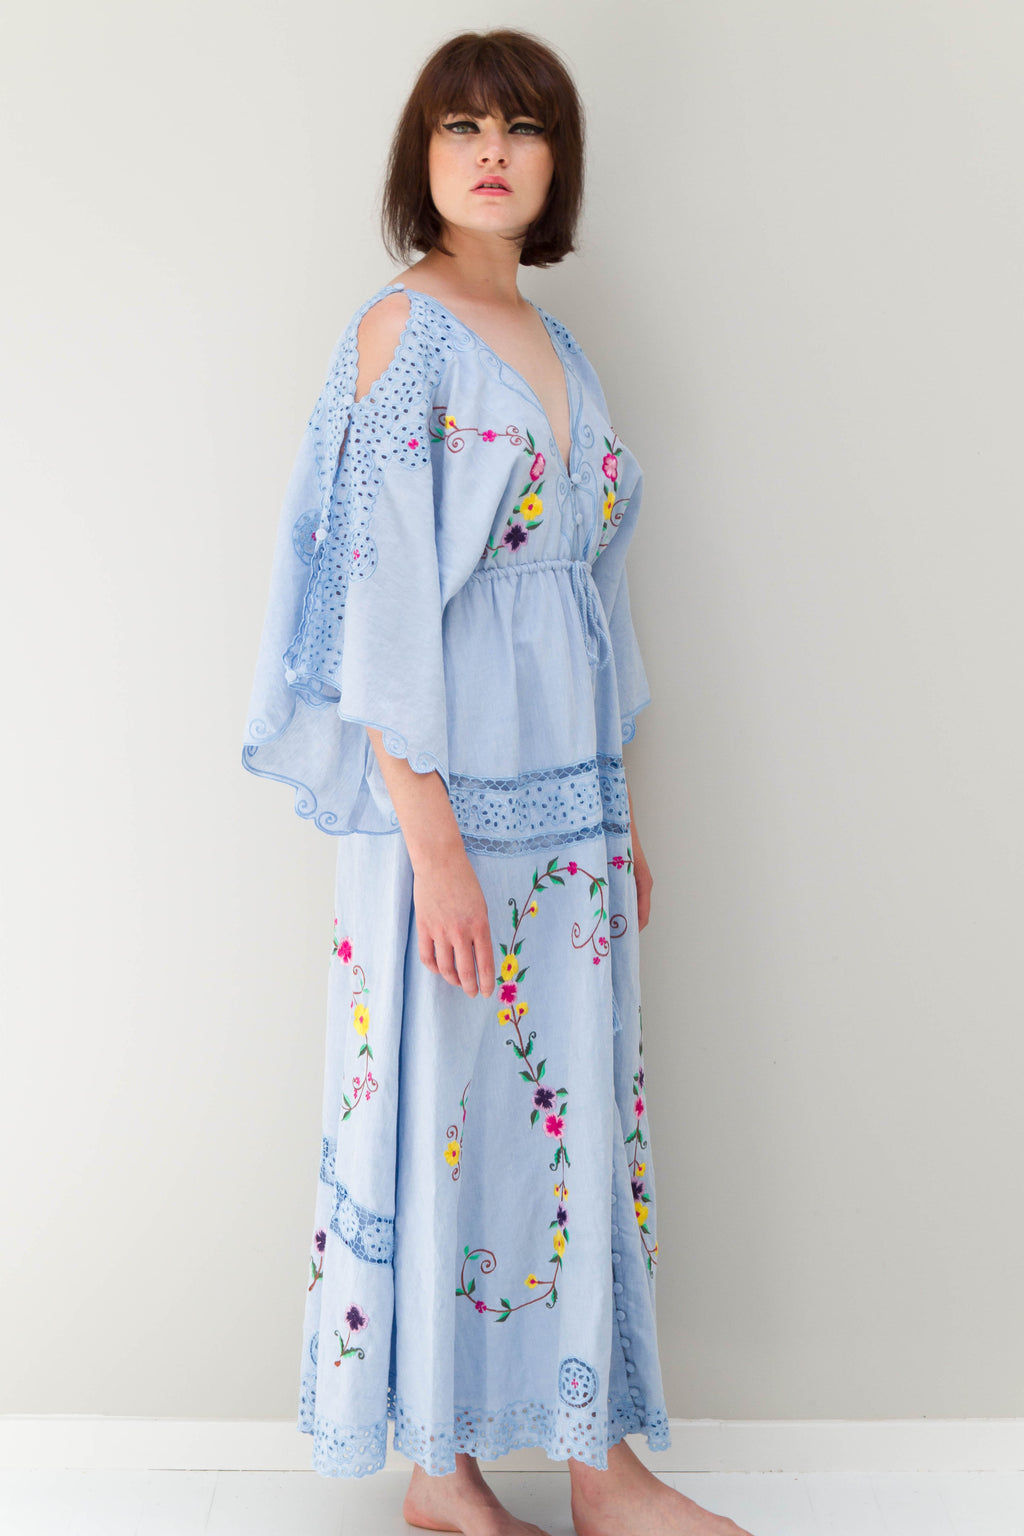 FILLYBOO - 'SIXPENCE' - REVERSIBLE DUSTER/GOWN - CHAMBRAY